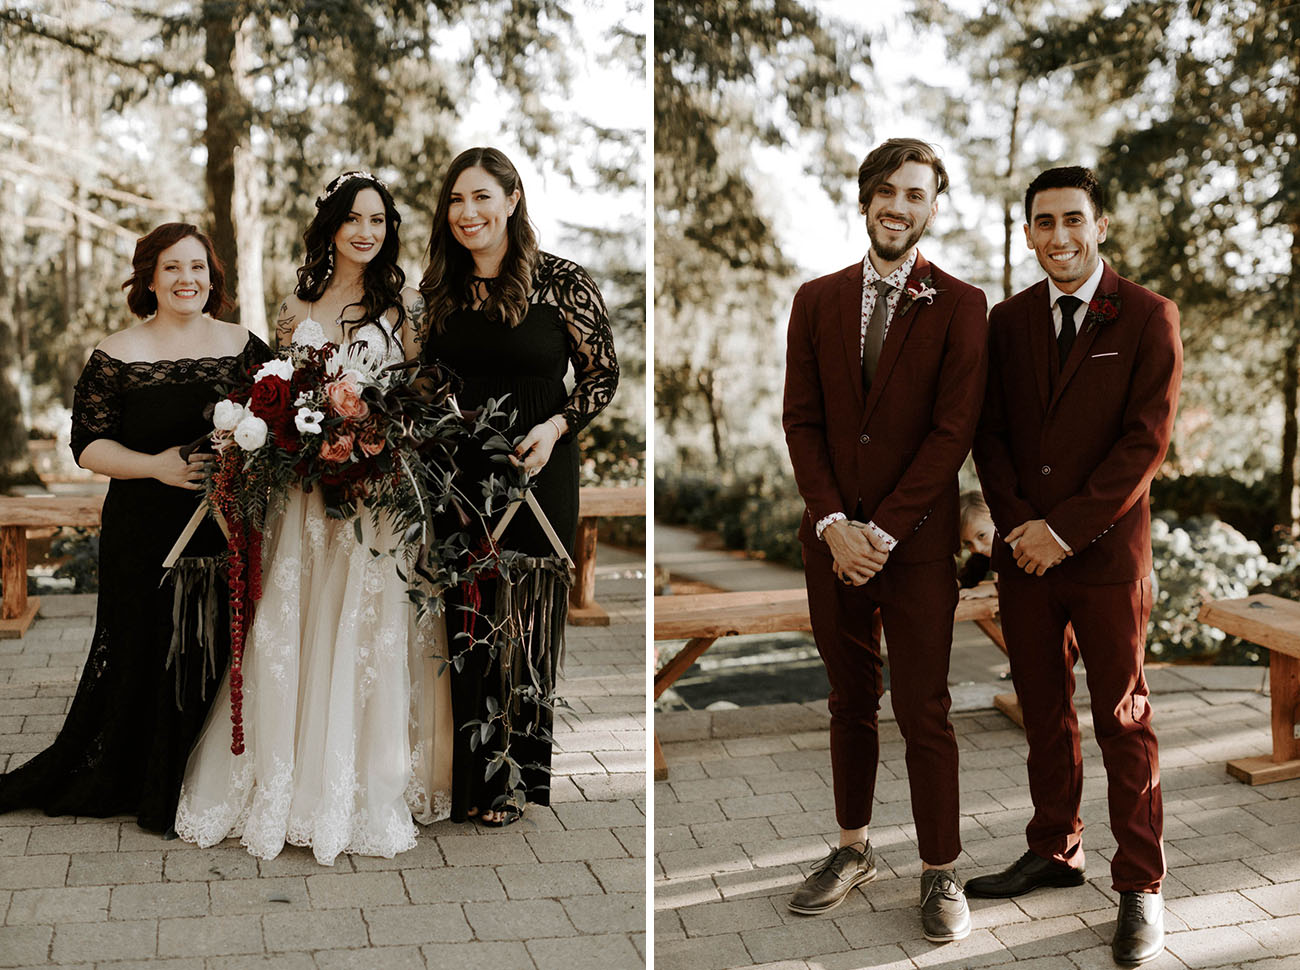 The bridesmaids were wearing black lace mismatching maxi gowns, and the groomsmen were wearing burgundy suits and grey shoes